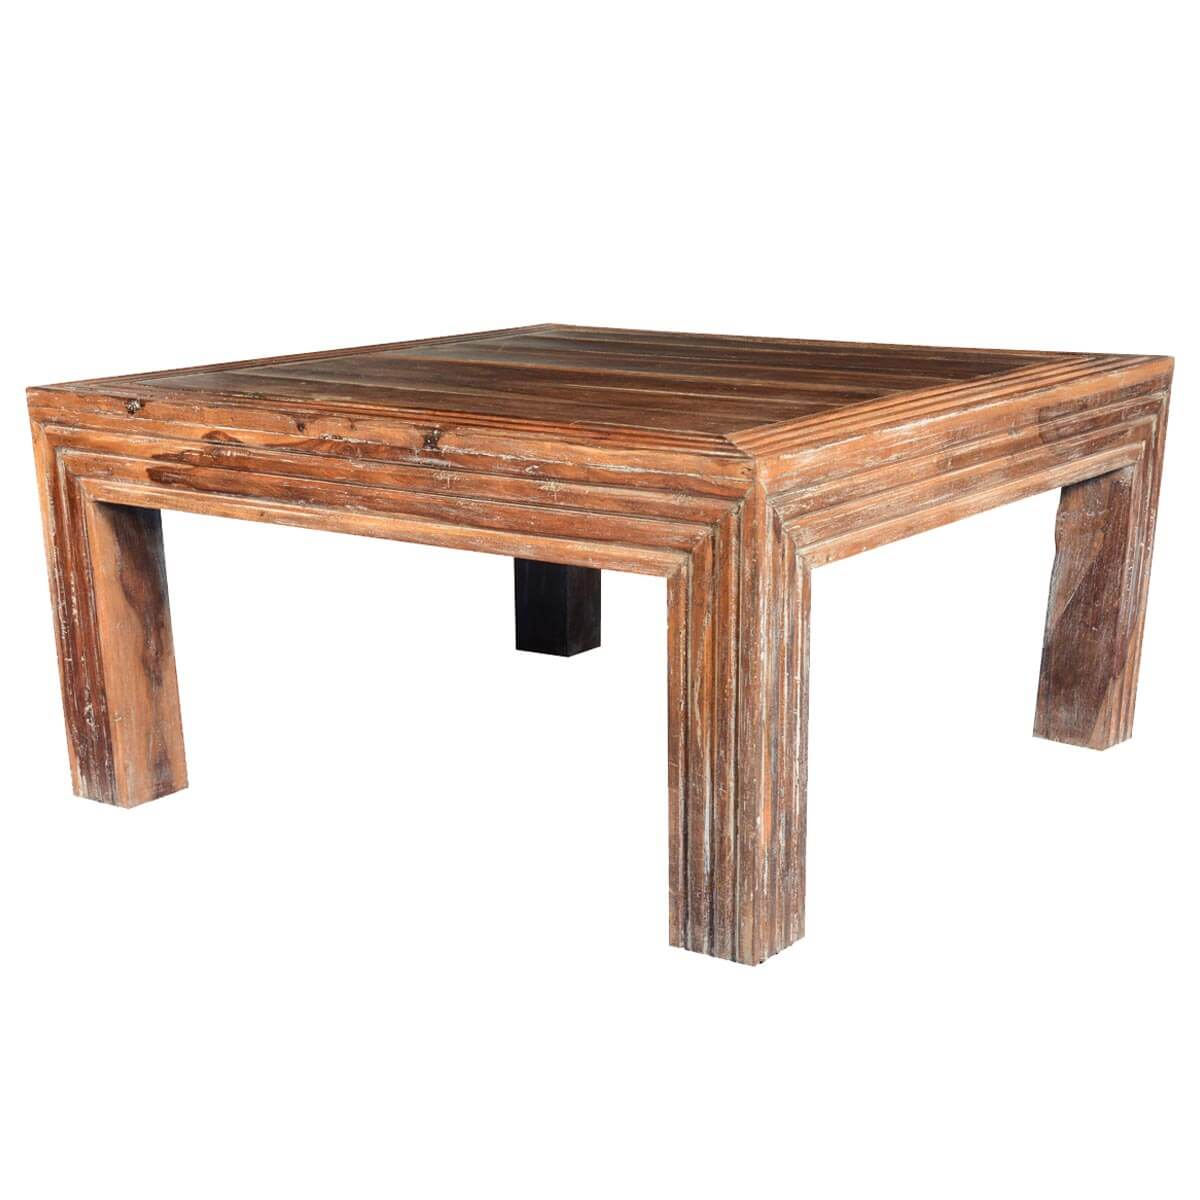 Reclaimed Wood Square Coffee Table Reclaimed Wood Square Coffee Table Modern Coffee Tables